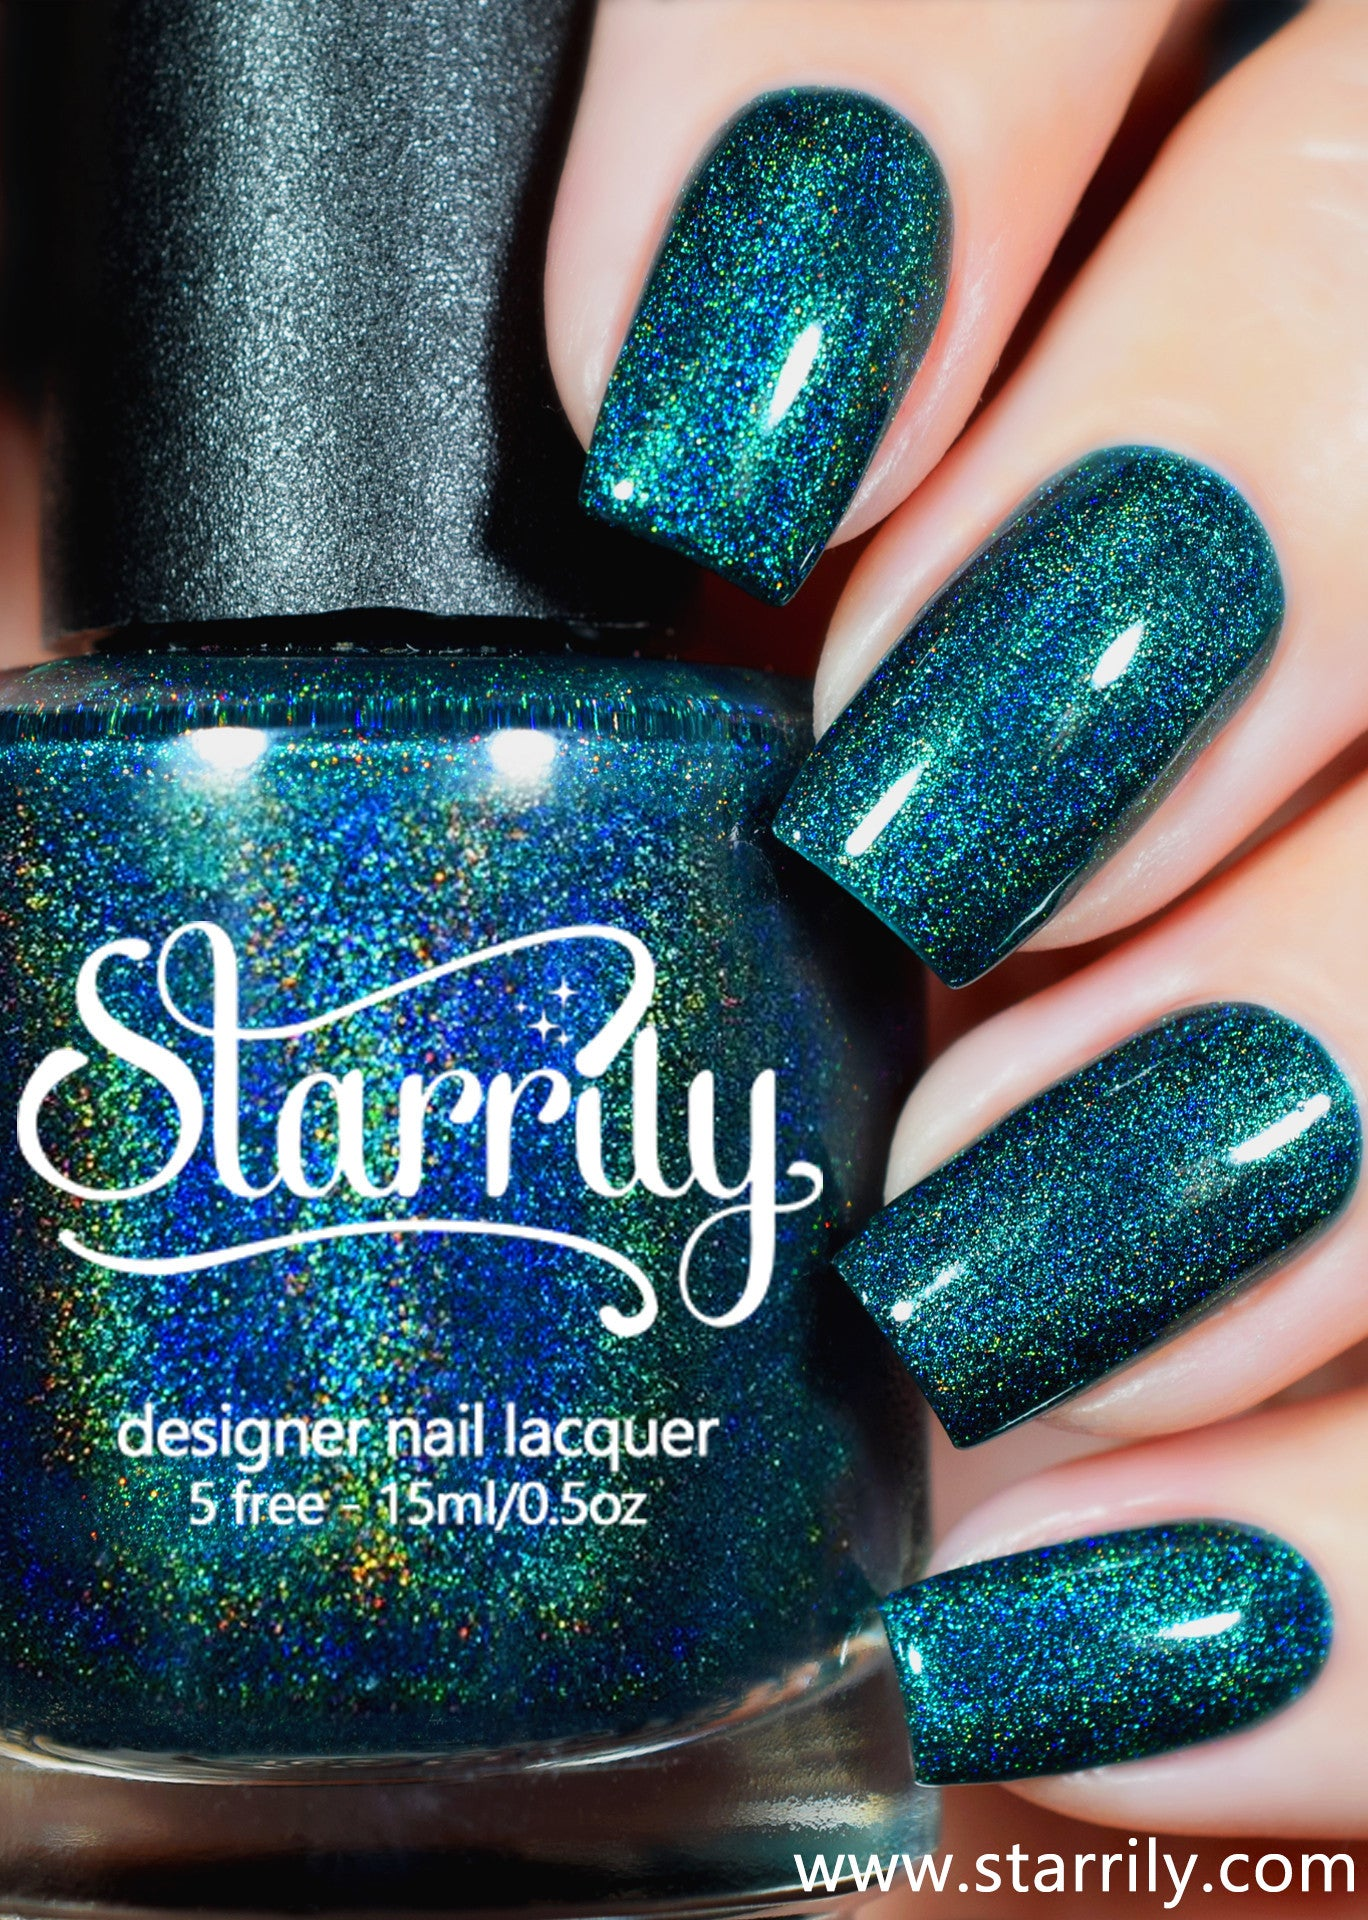 Quantum Energy is a beautiful green linear holographic nail polish